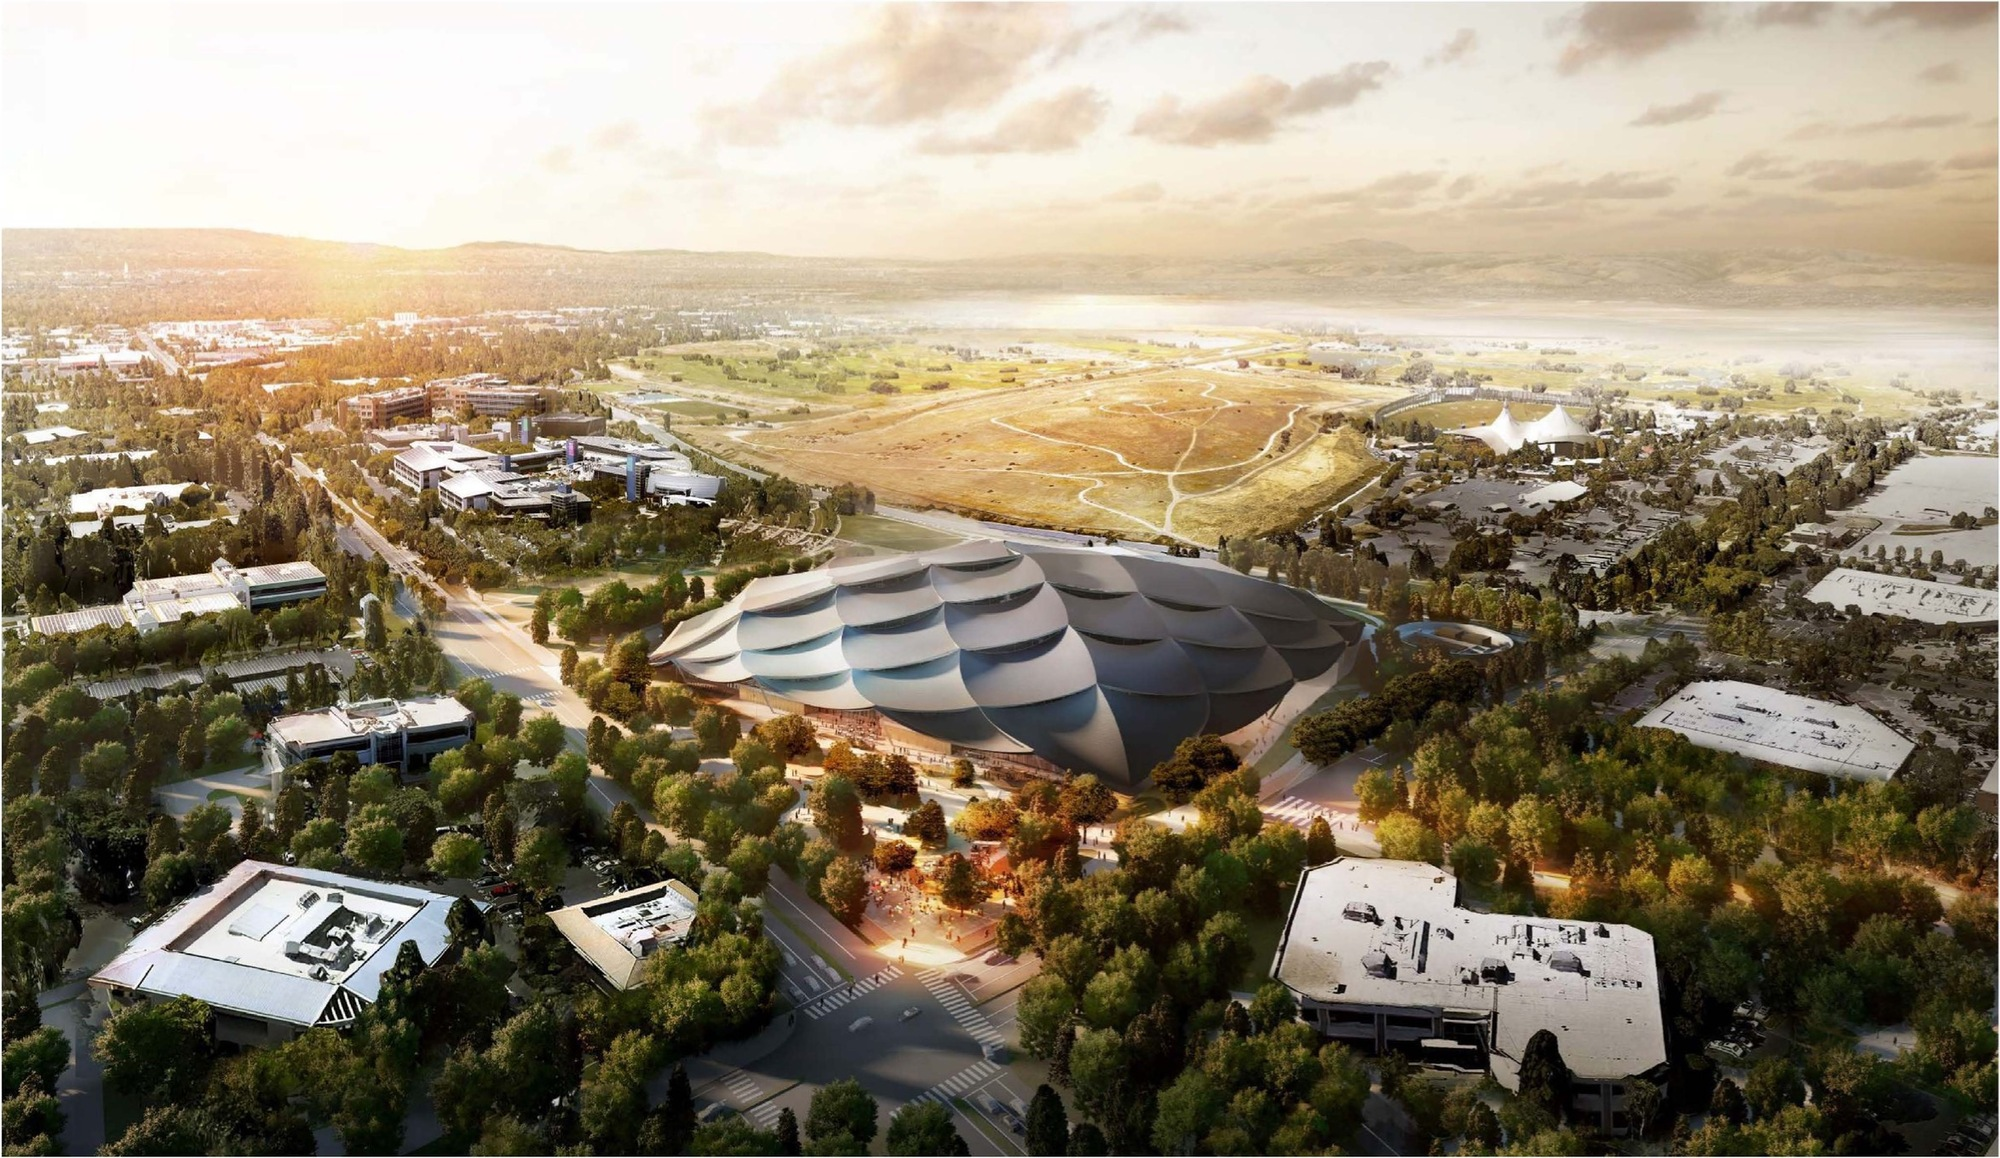 New Renderings Revealed of Google s Mountain View Campus Courtesy of City of Mountain View